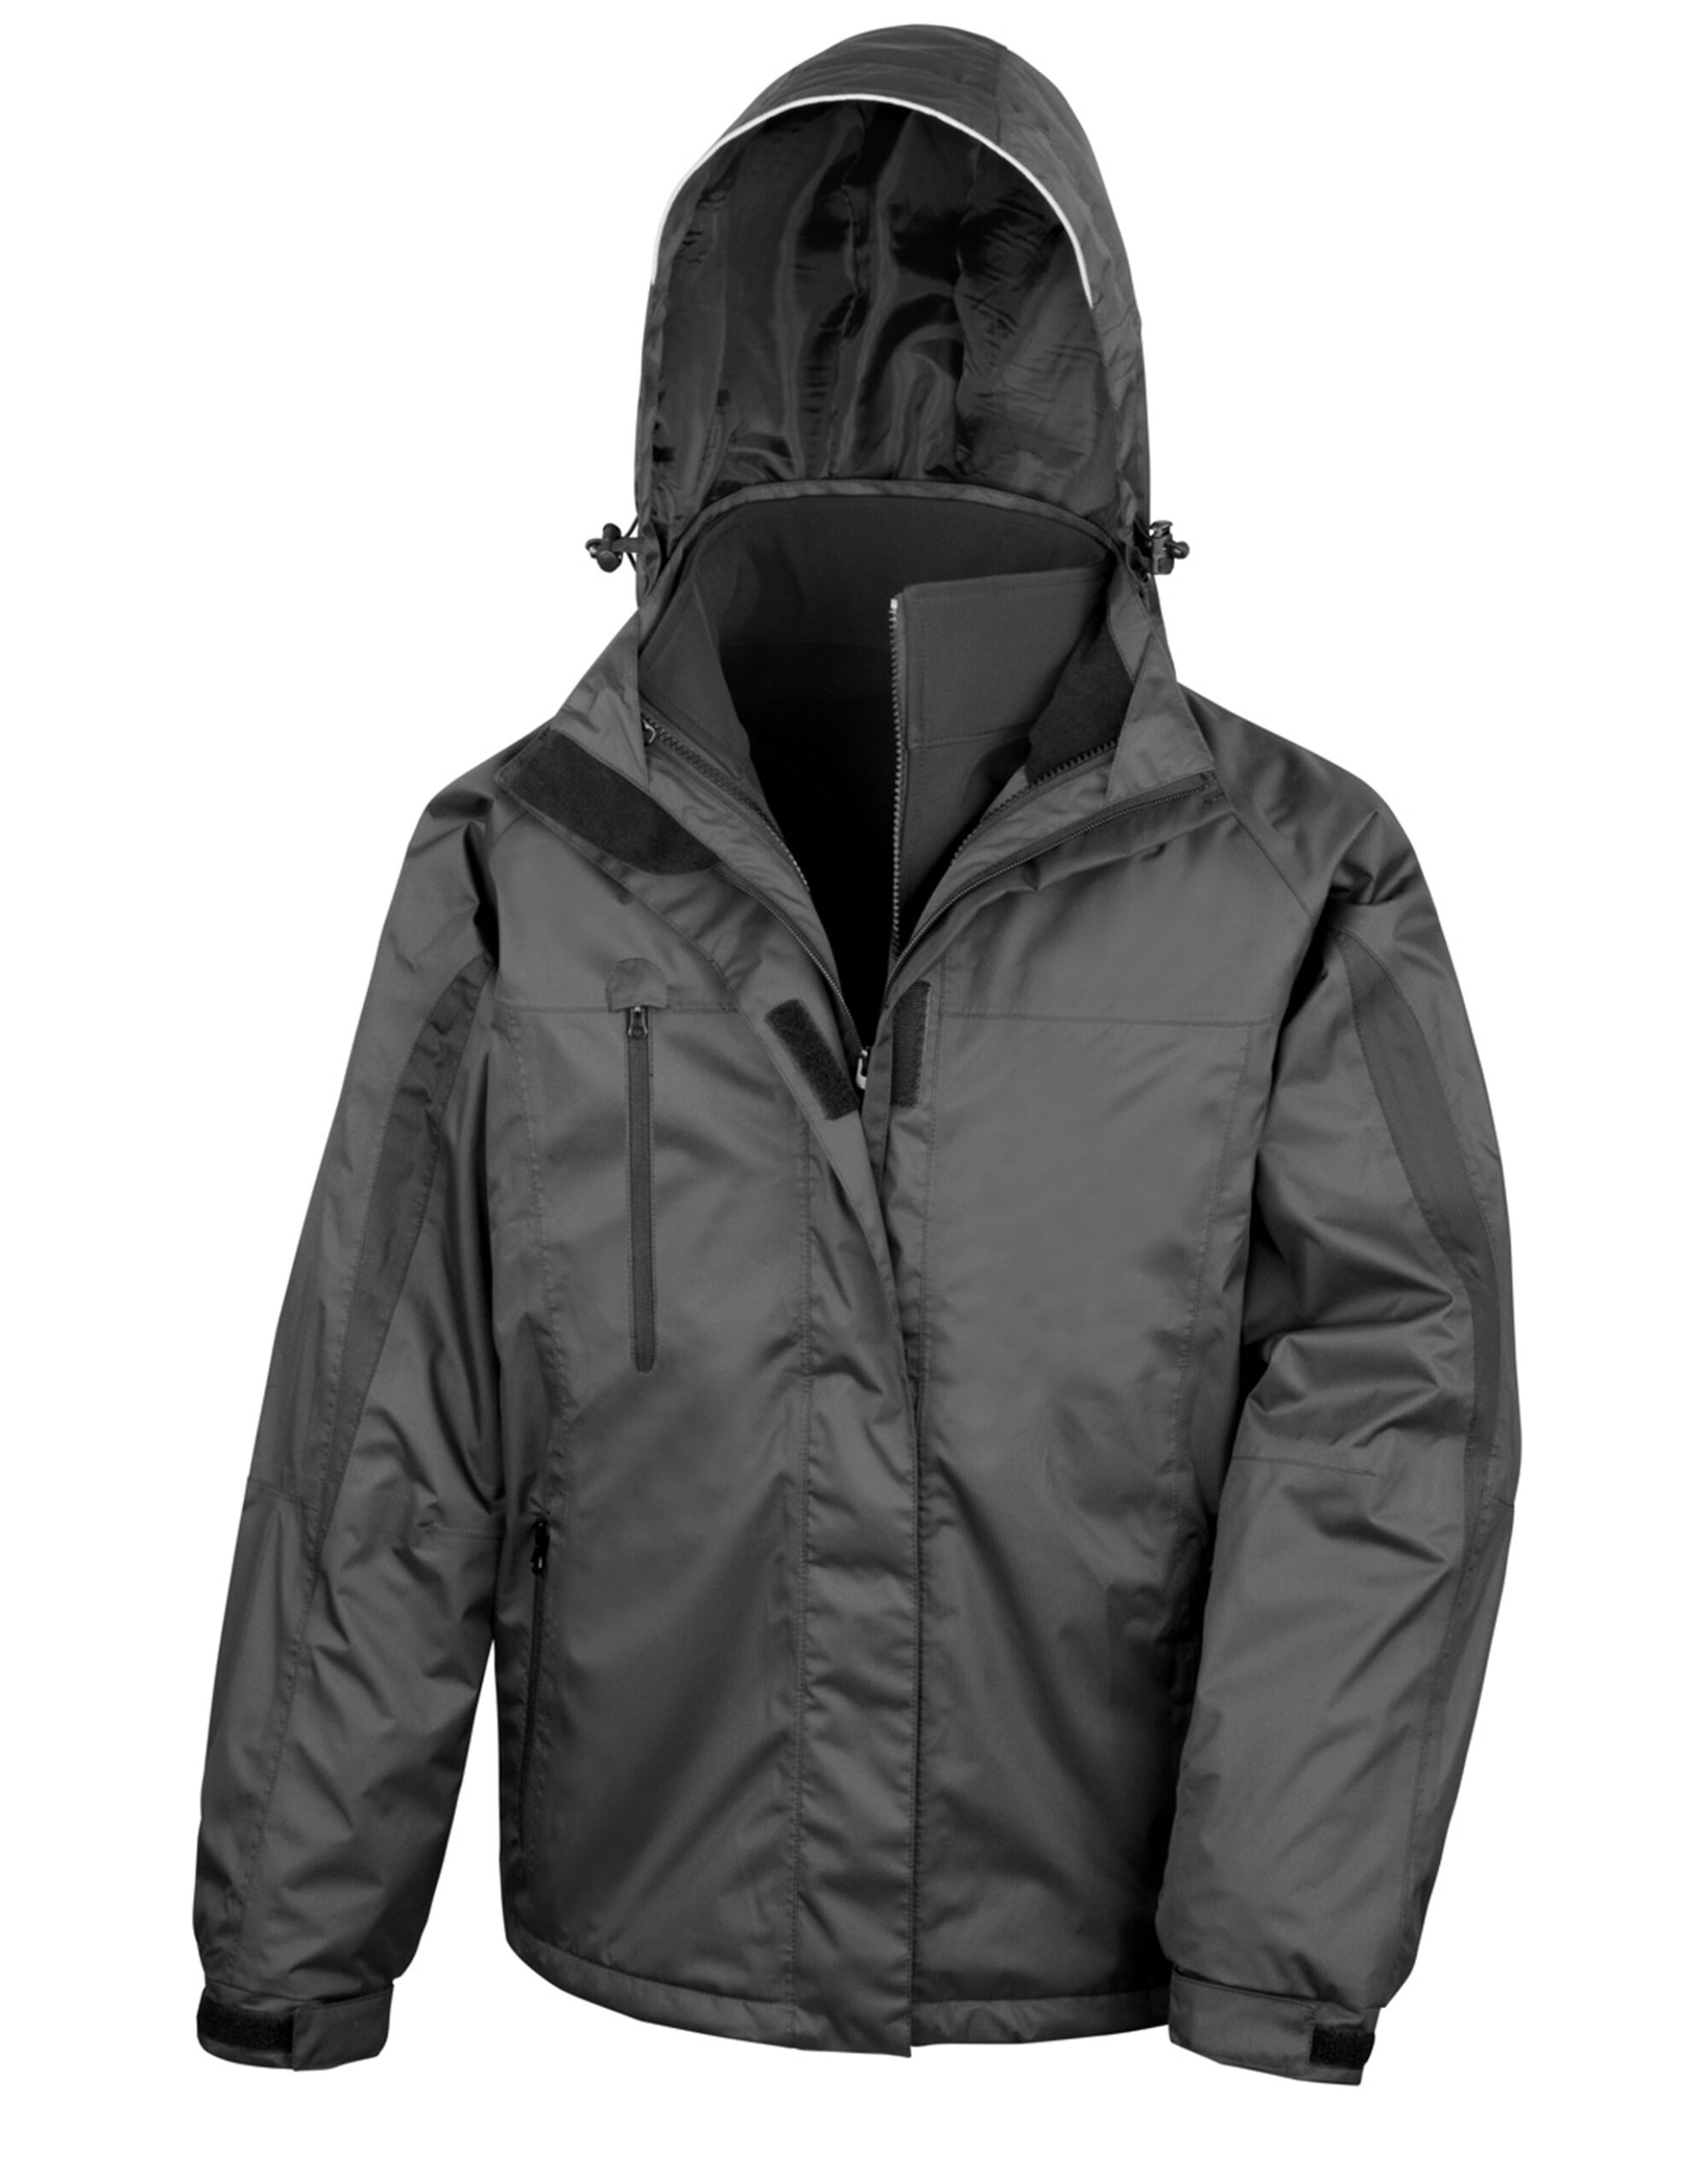 Mens 3 In 1 Journey Jacket